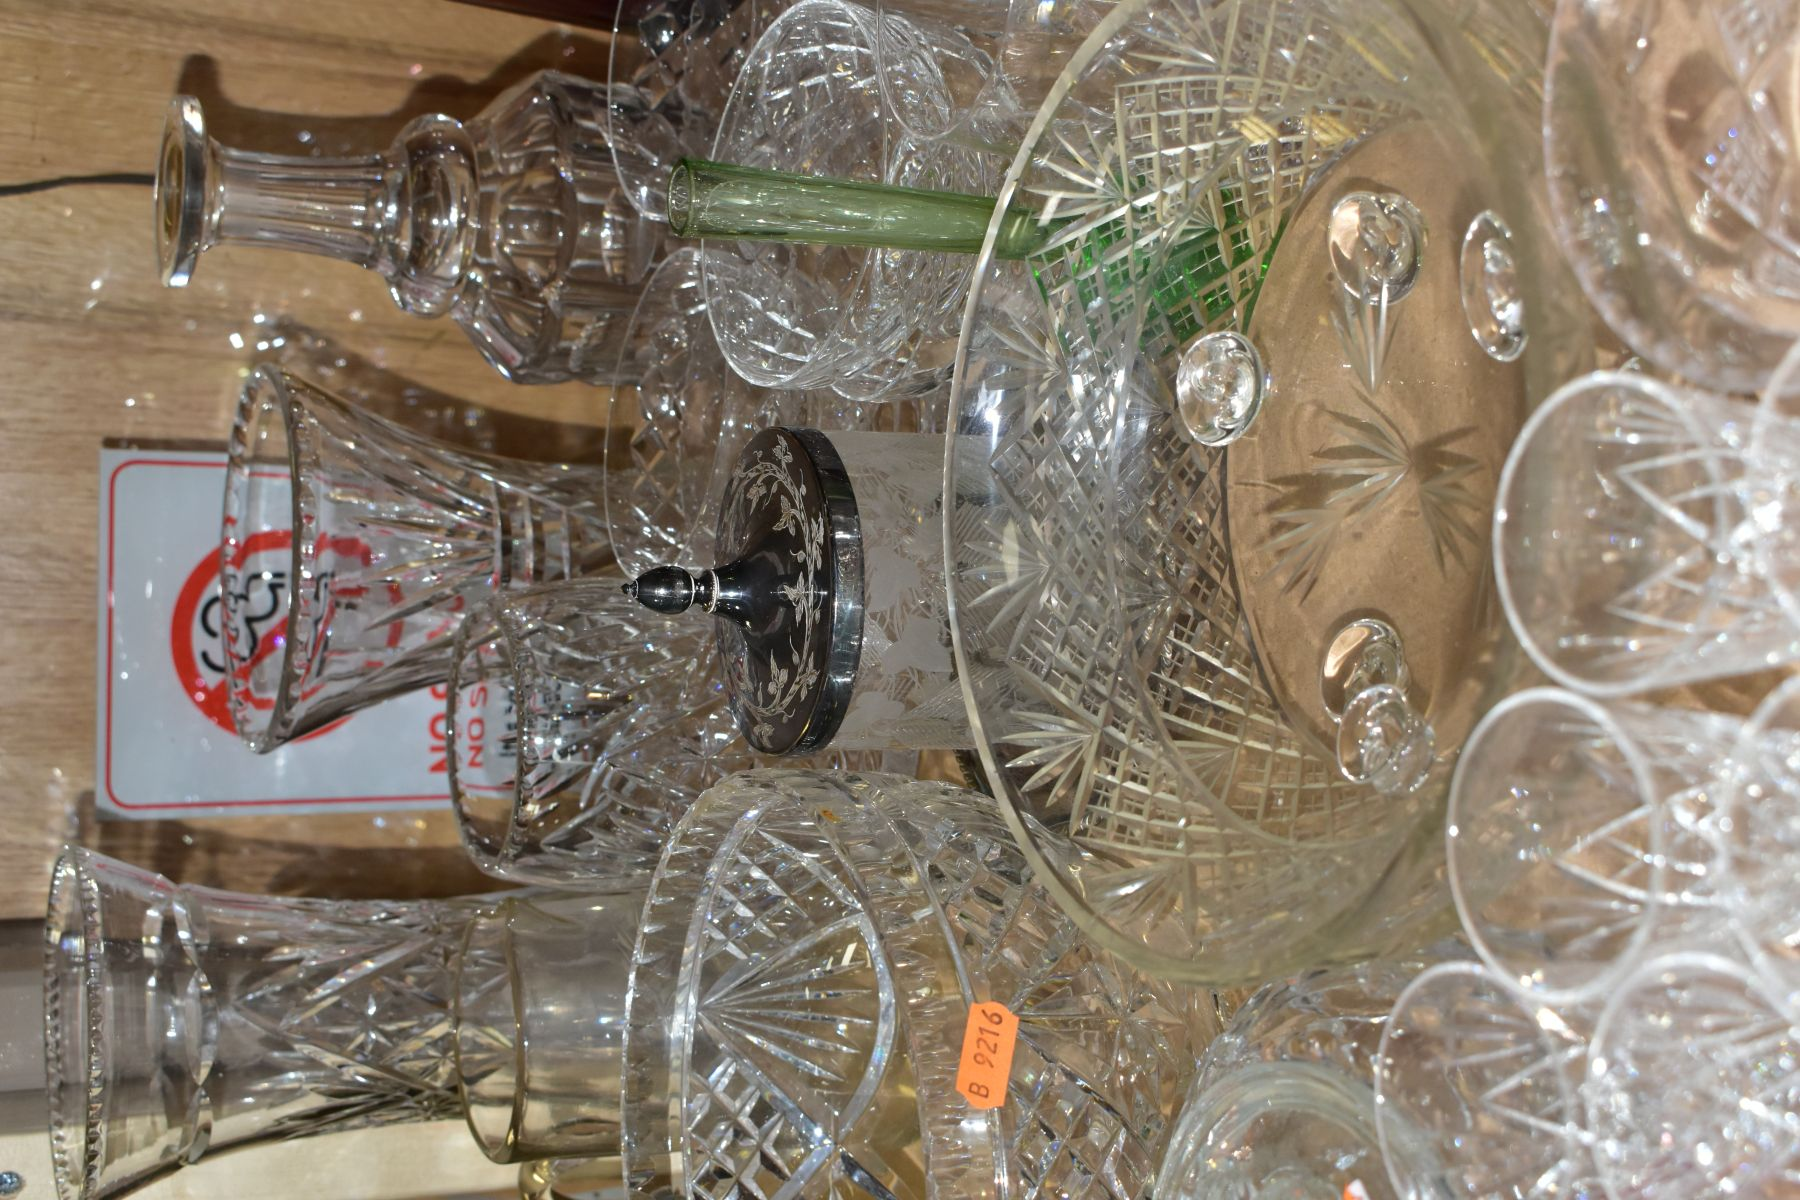 A QUANTITY OF GLASSWARE, including a Waterford Crystal quartz mantel clock, height 11cm, coloured - Image 6 of 9